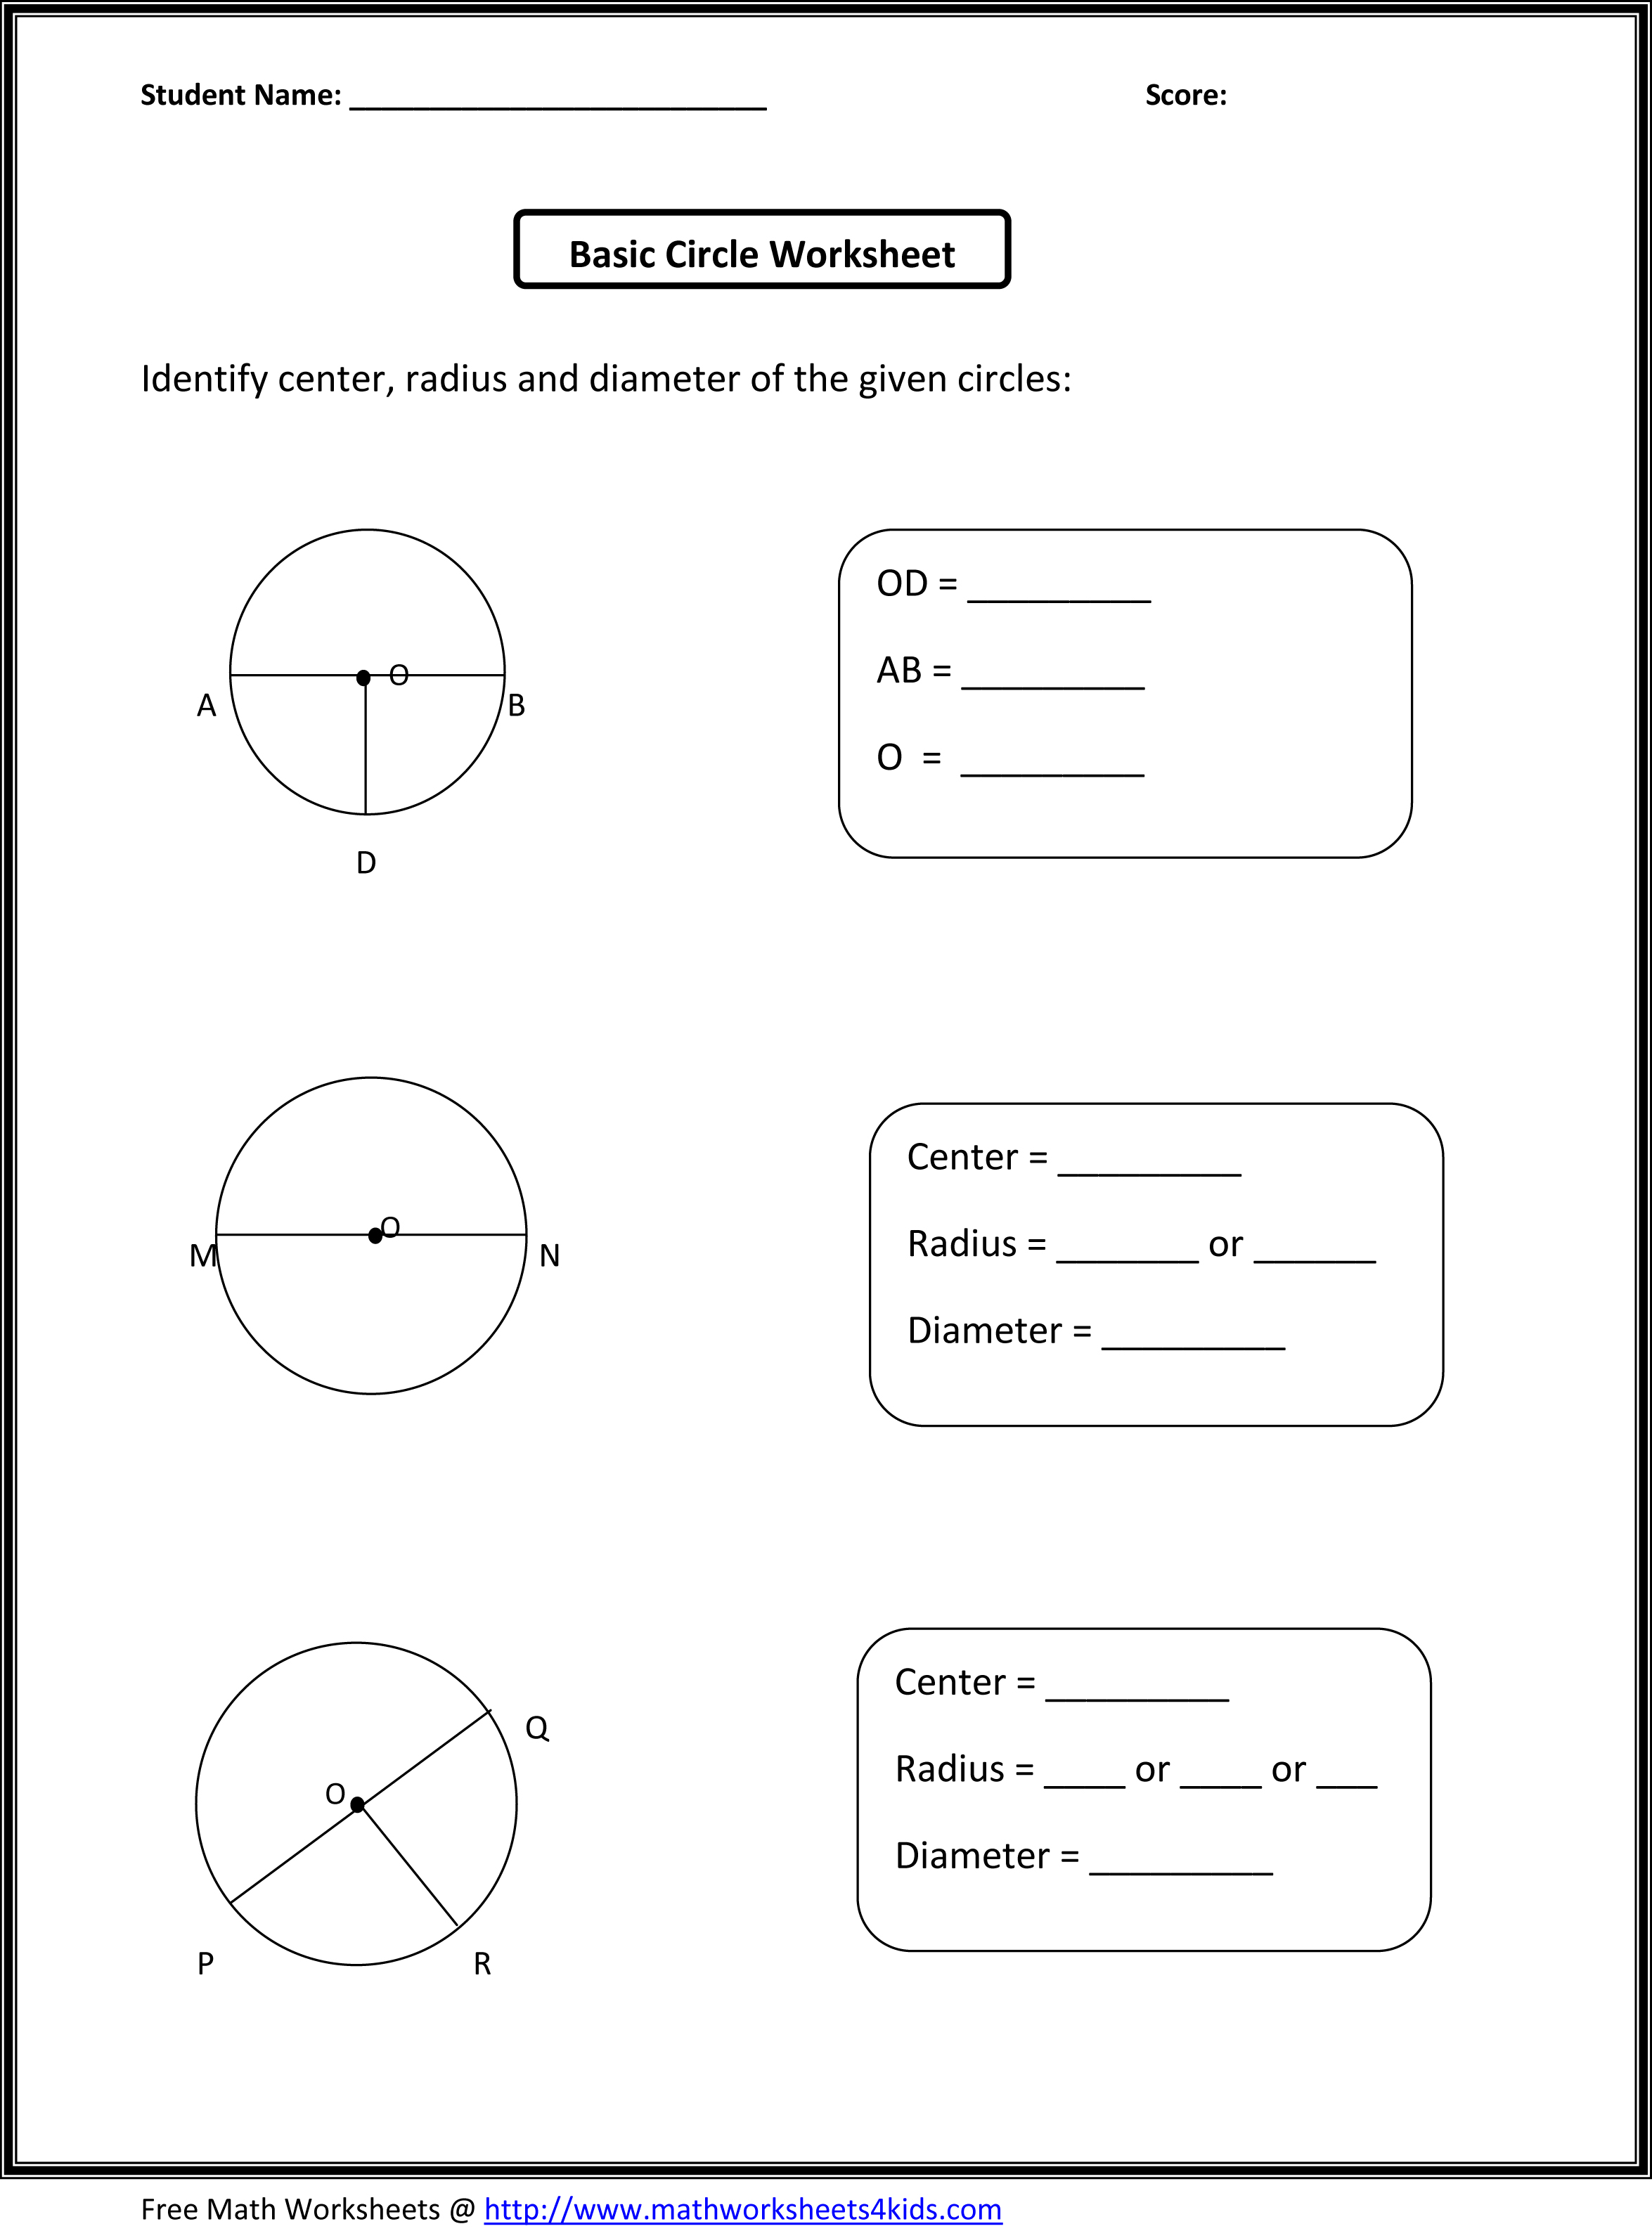 Free Worksheet Math Worksheet 3rd Grade worksheet 500384 math practice worksheets for 3rd grade problems graders grade